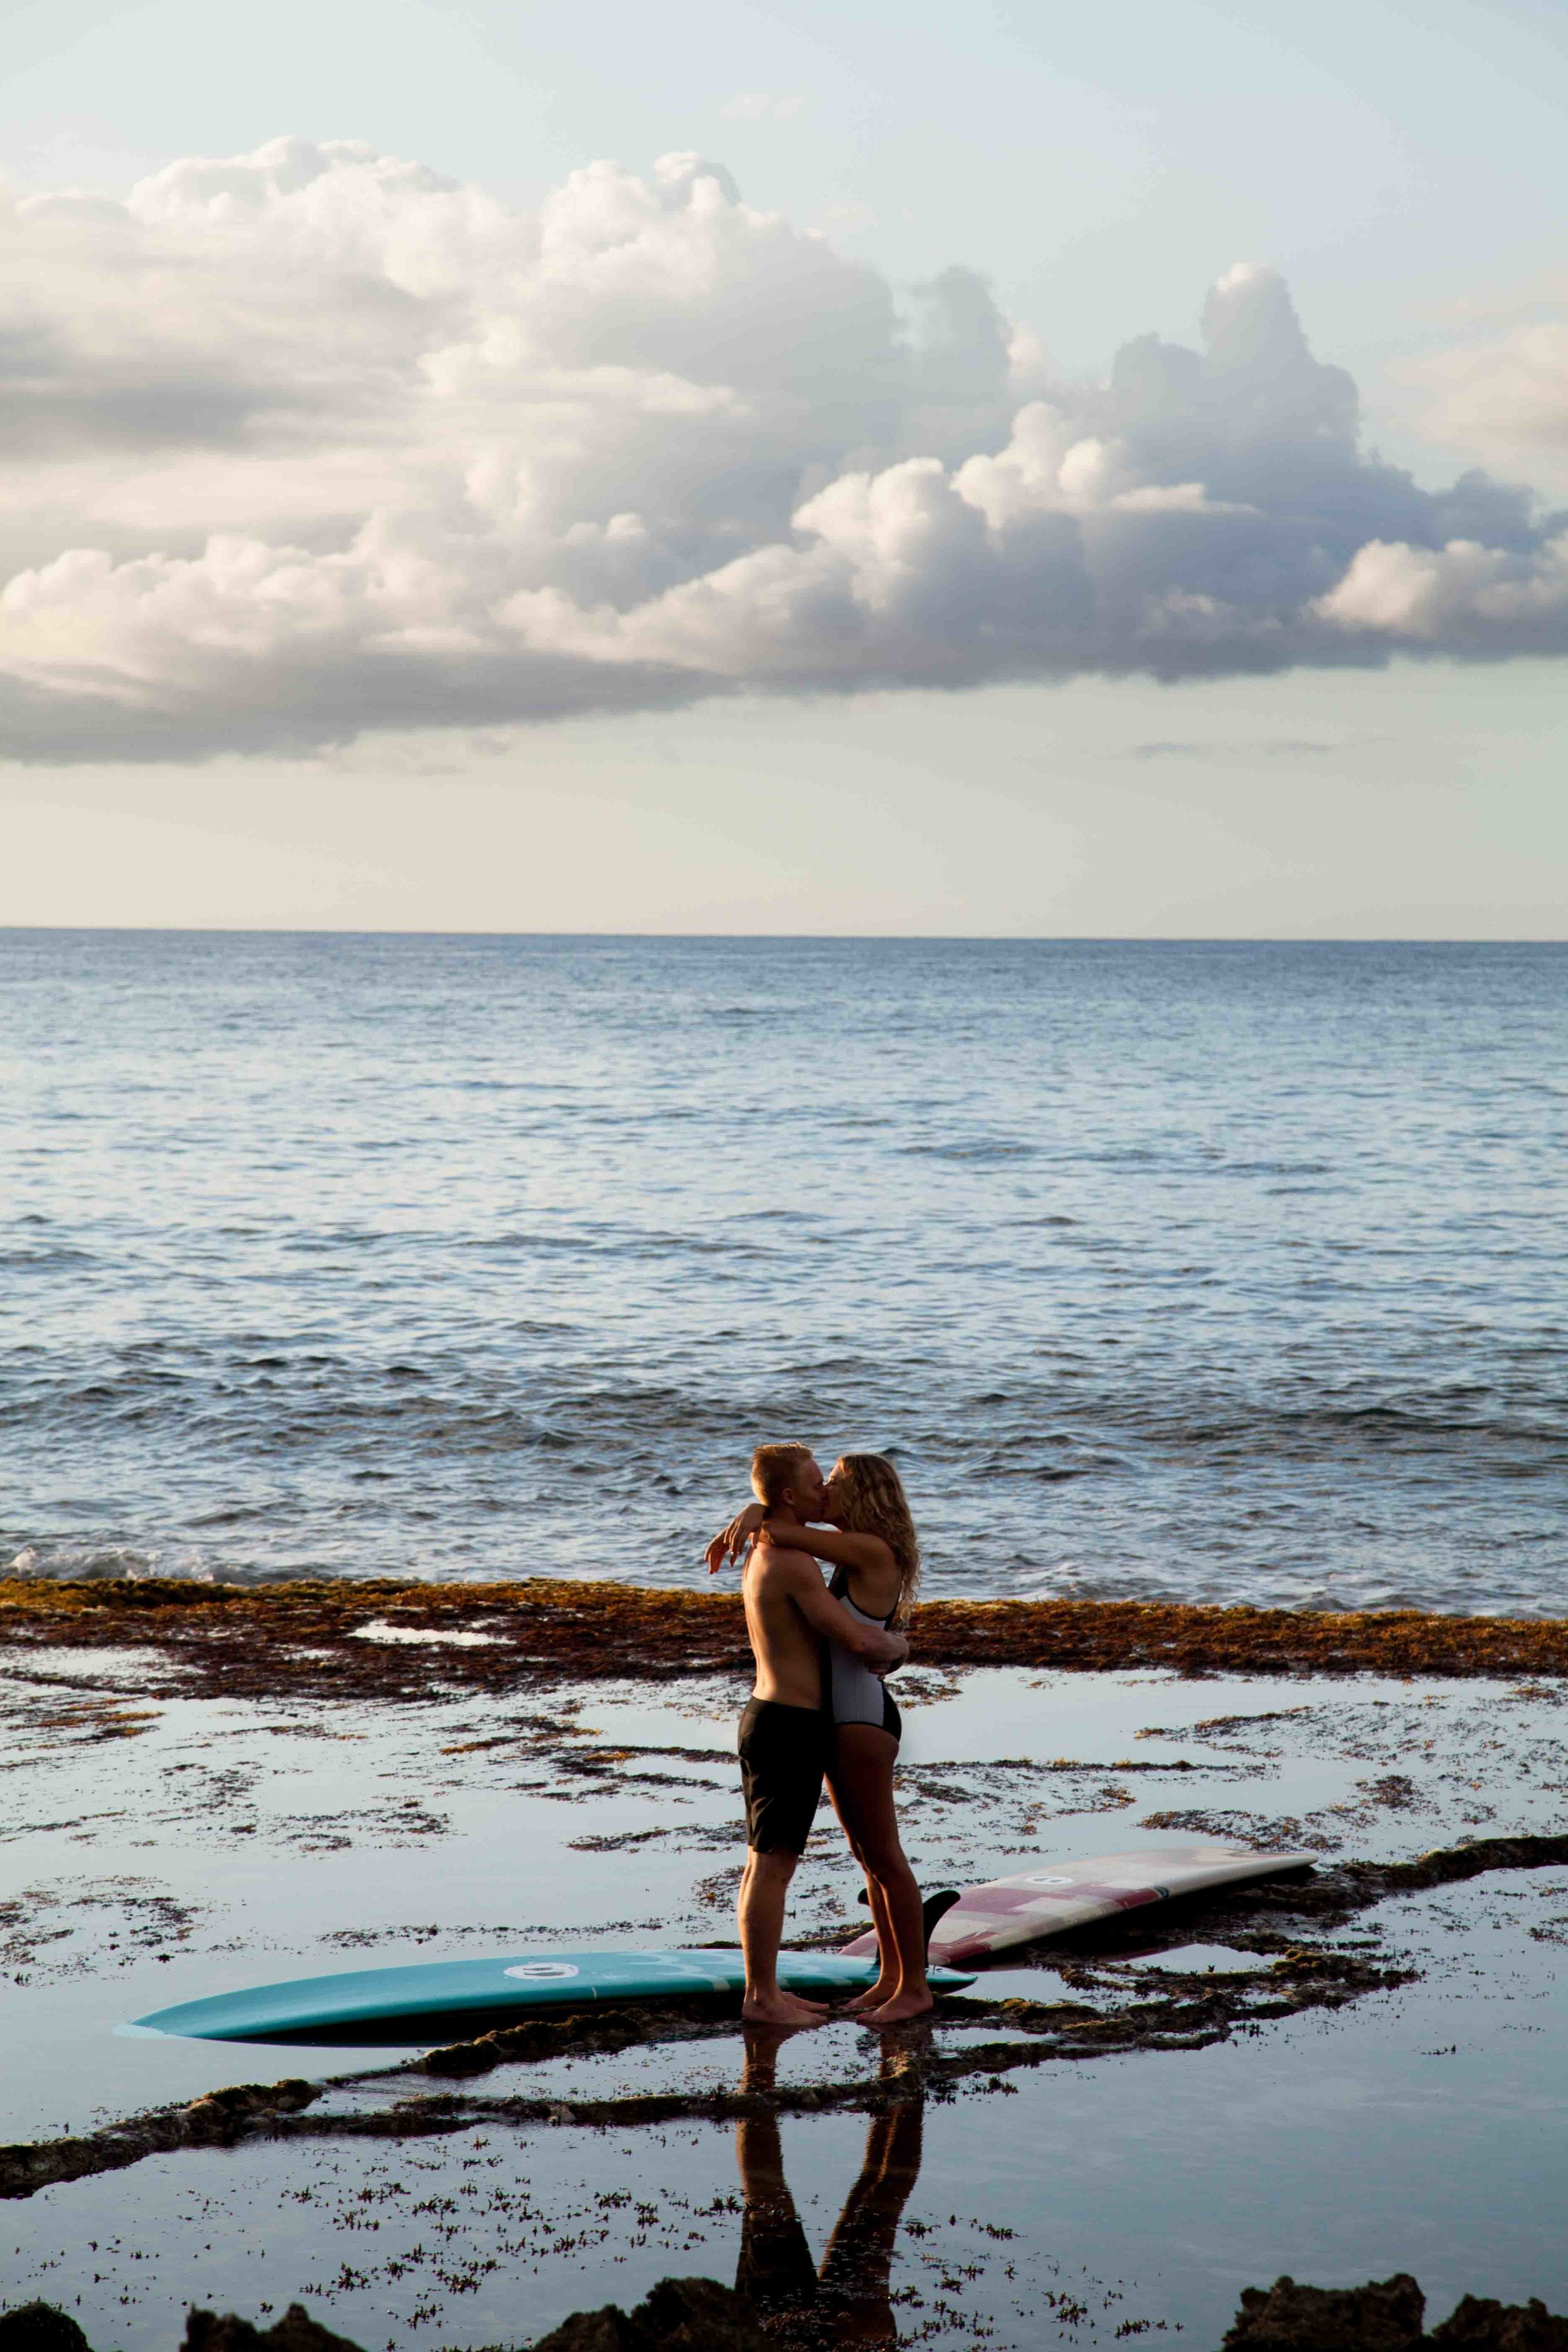 meghan-nicole-photography-hawaii-destination-wedding-photographer-northshore-surfer-engagement-6.jpg